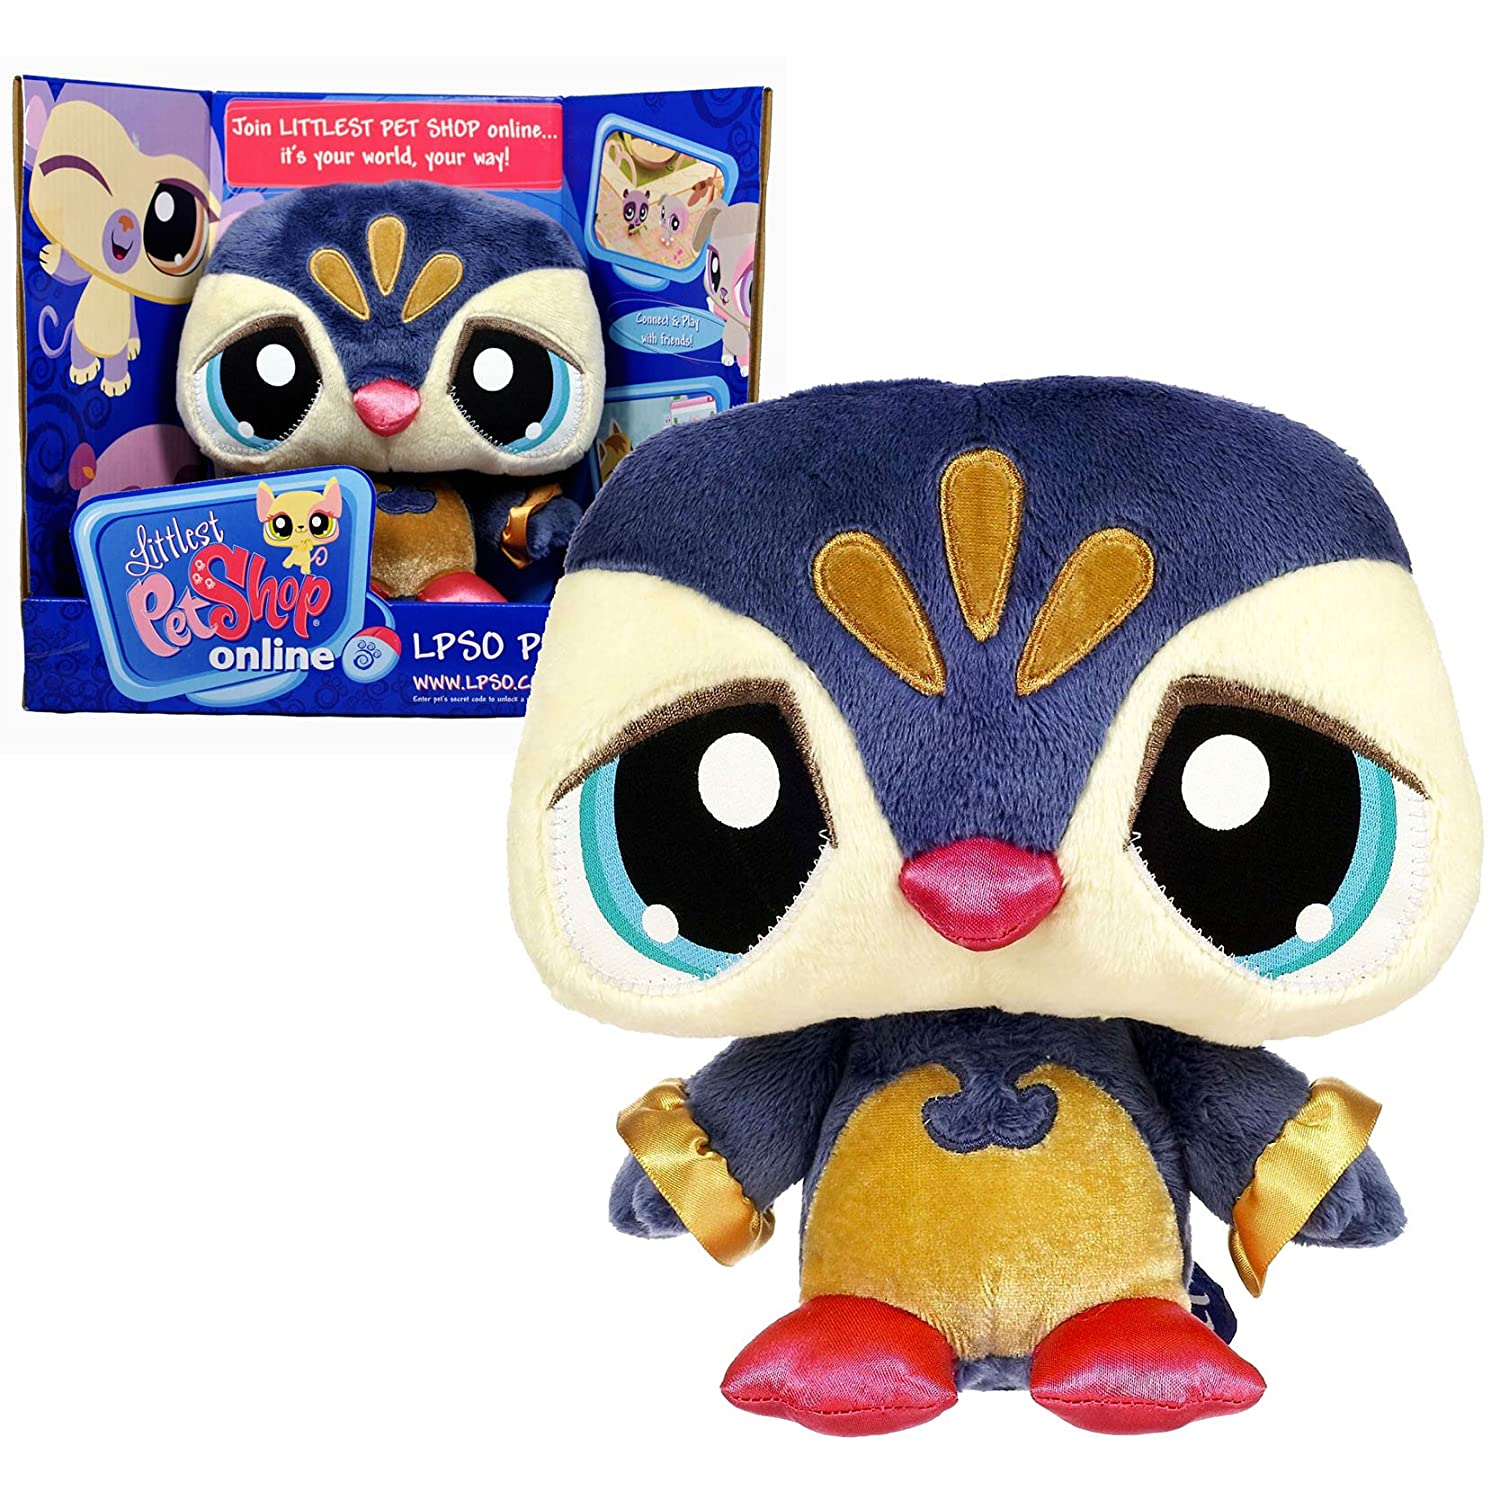 Littlest Pet Shop Online LPSO Pets Series 7 Inch Tall Plush Figure with Code to Unlock the Virtual World and Online B009OX92YE